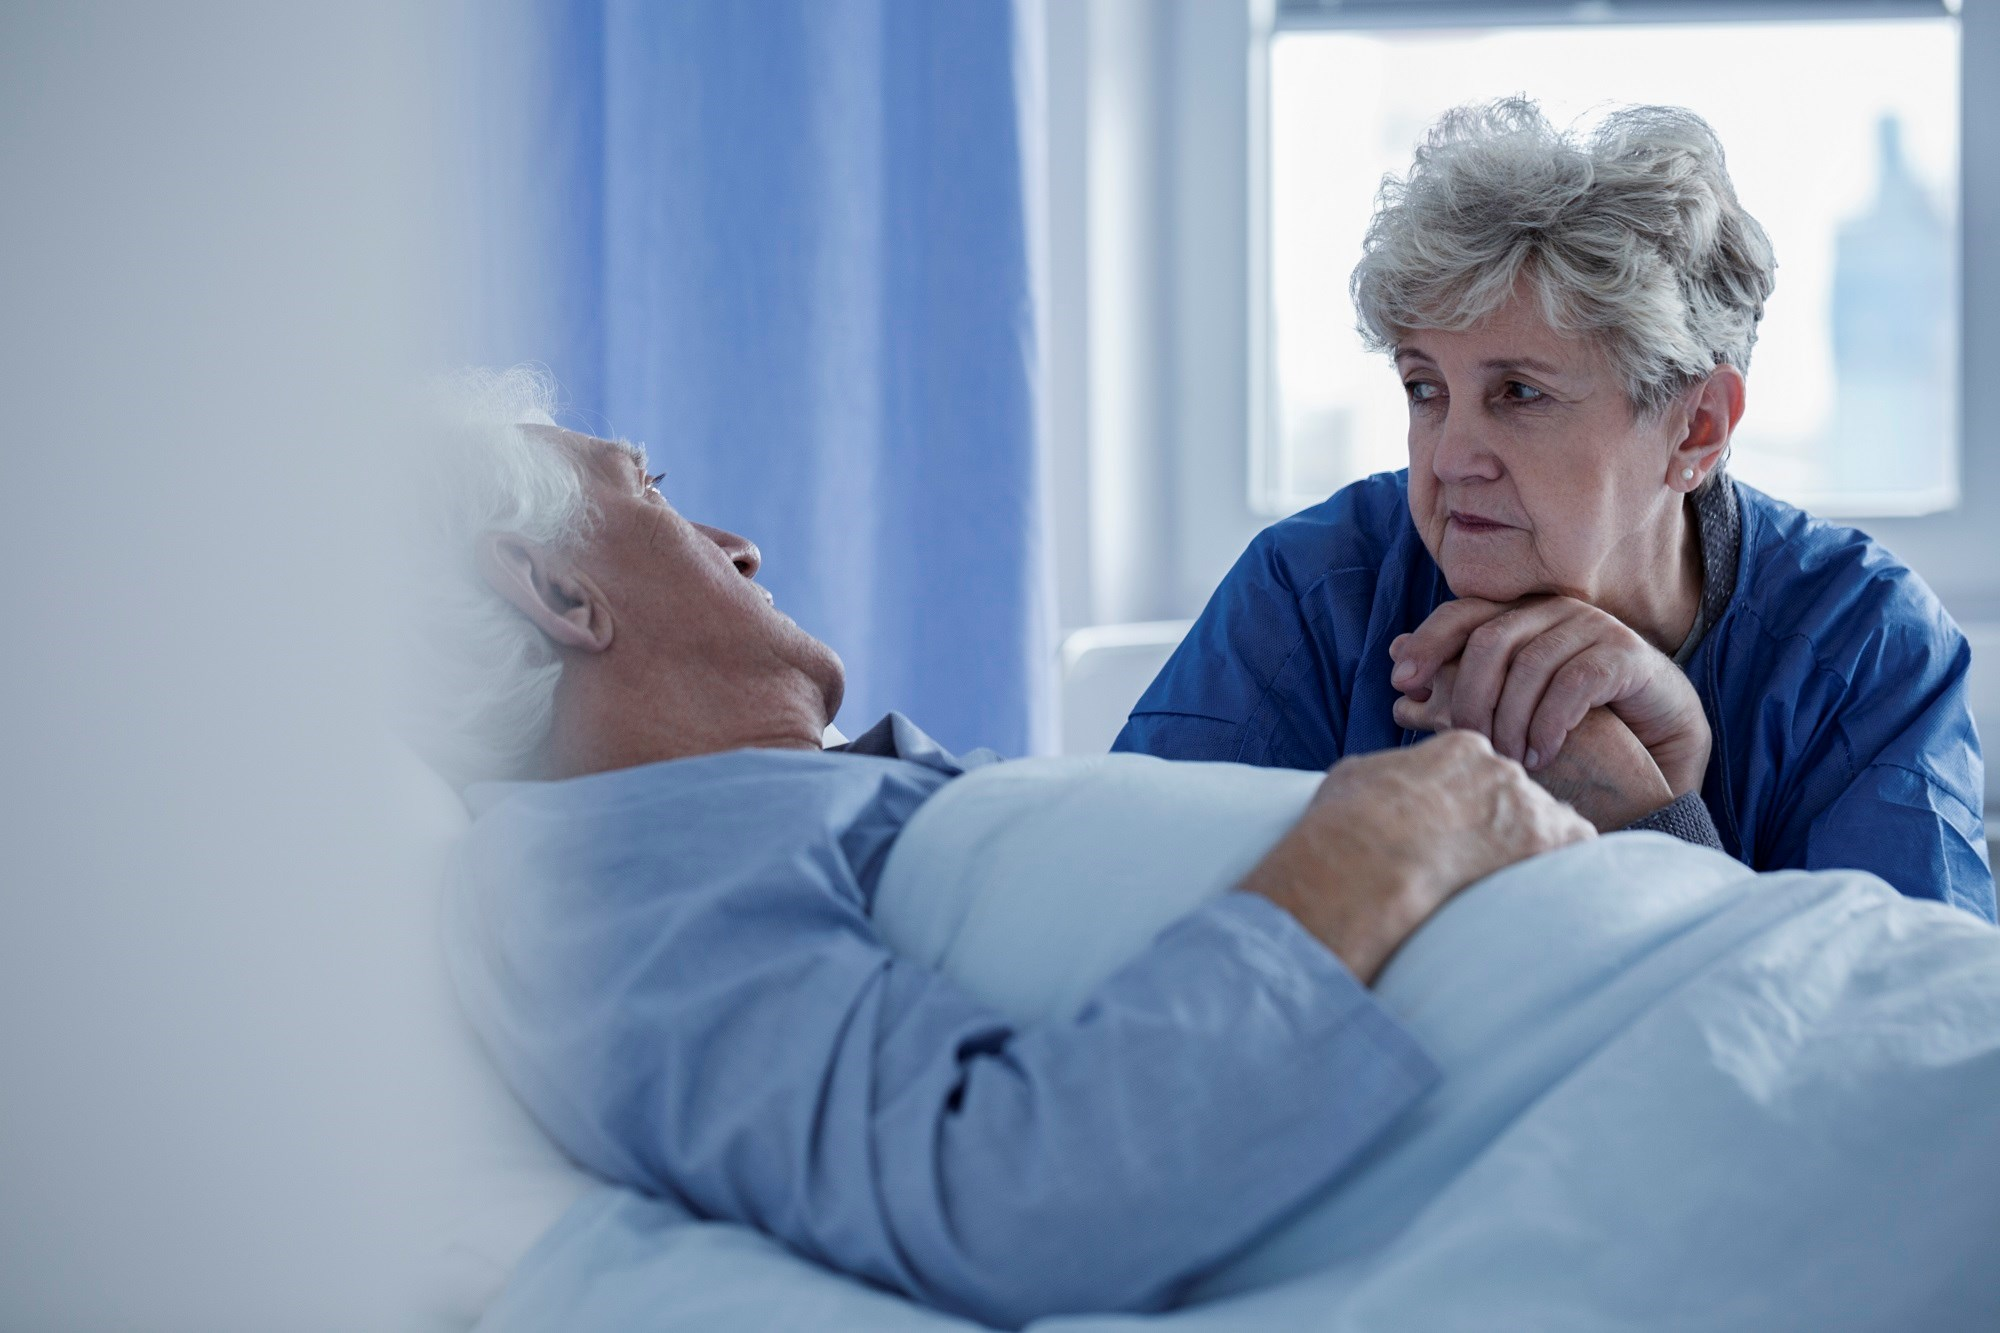 There are considerations for treating these seizures as part of the overall goals of palliative care, which include the family's experience.